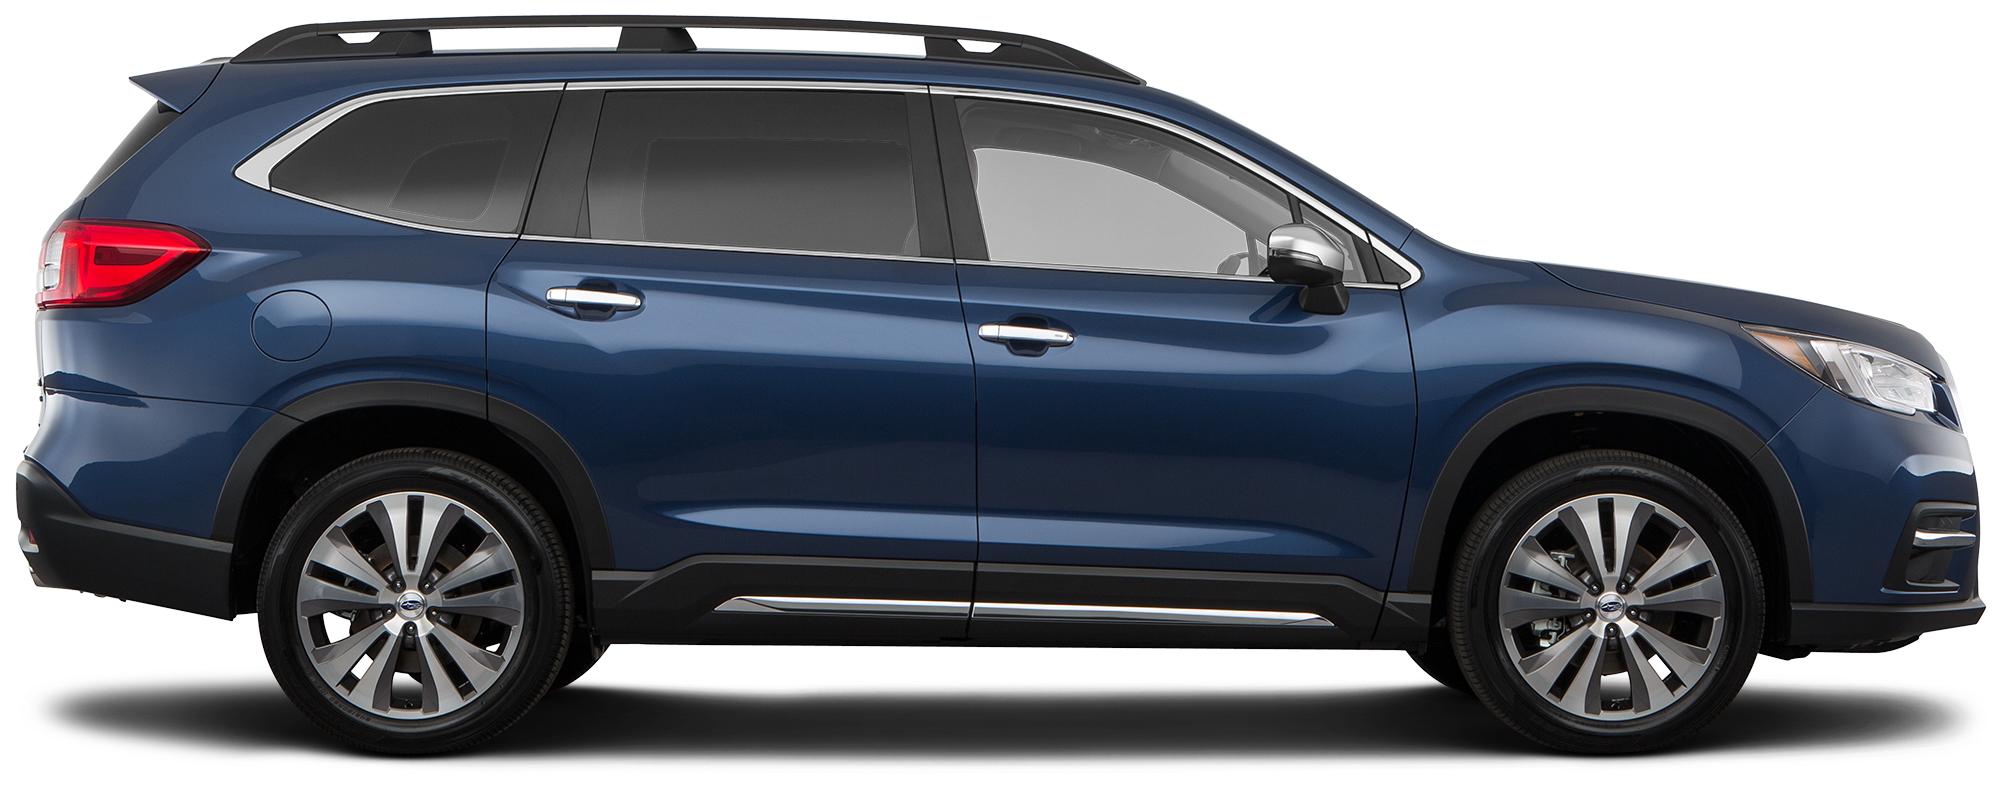 Subaru Ascent Touring